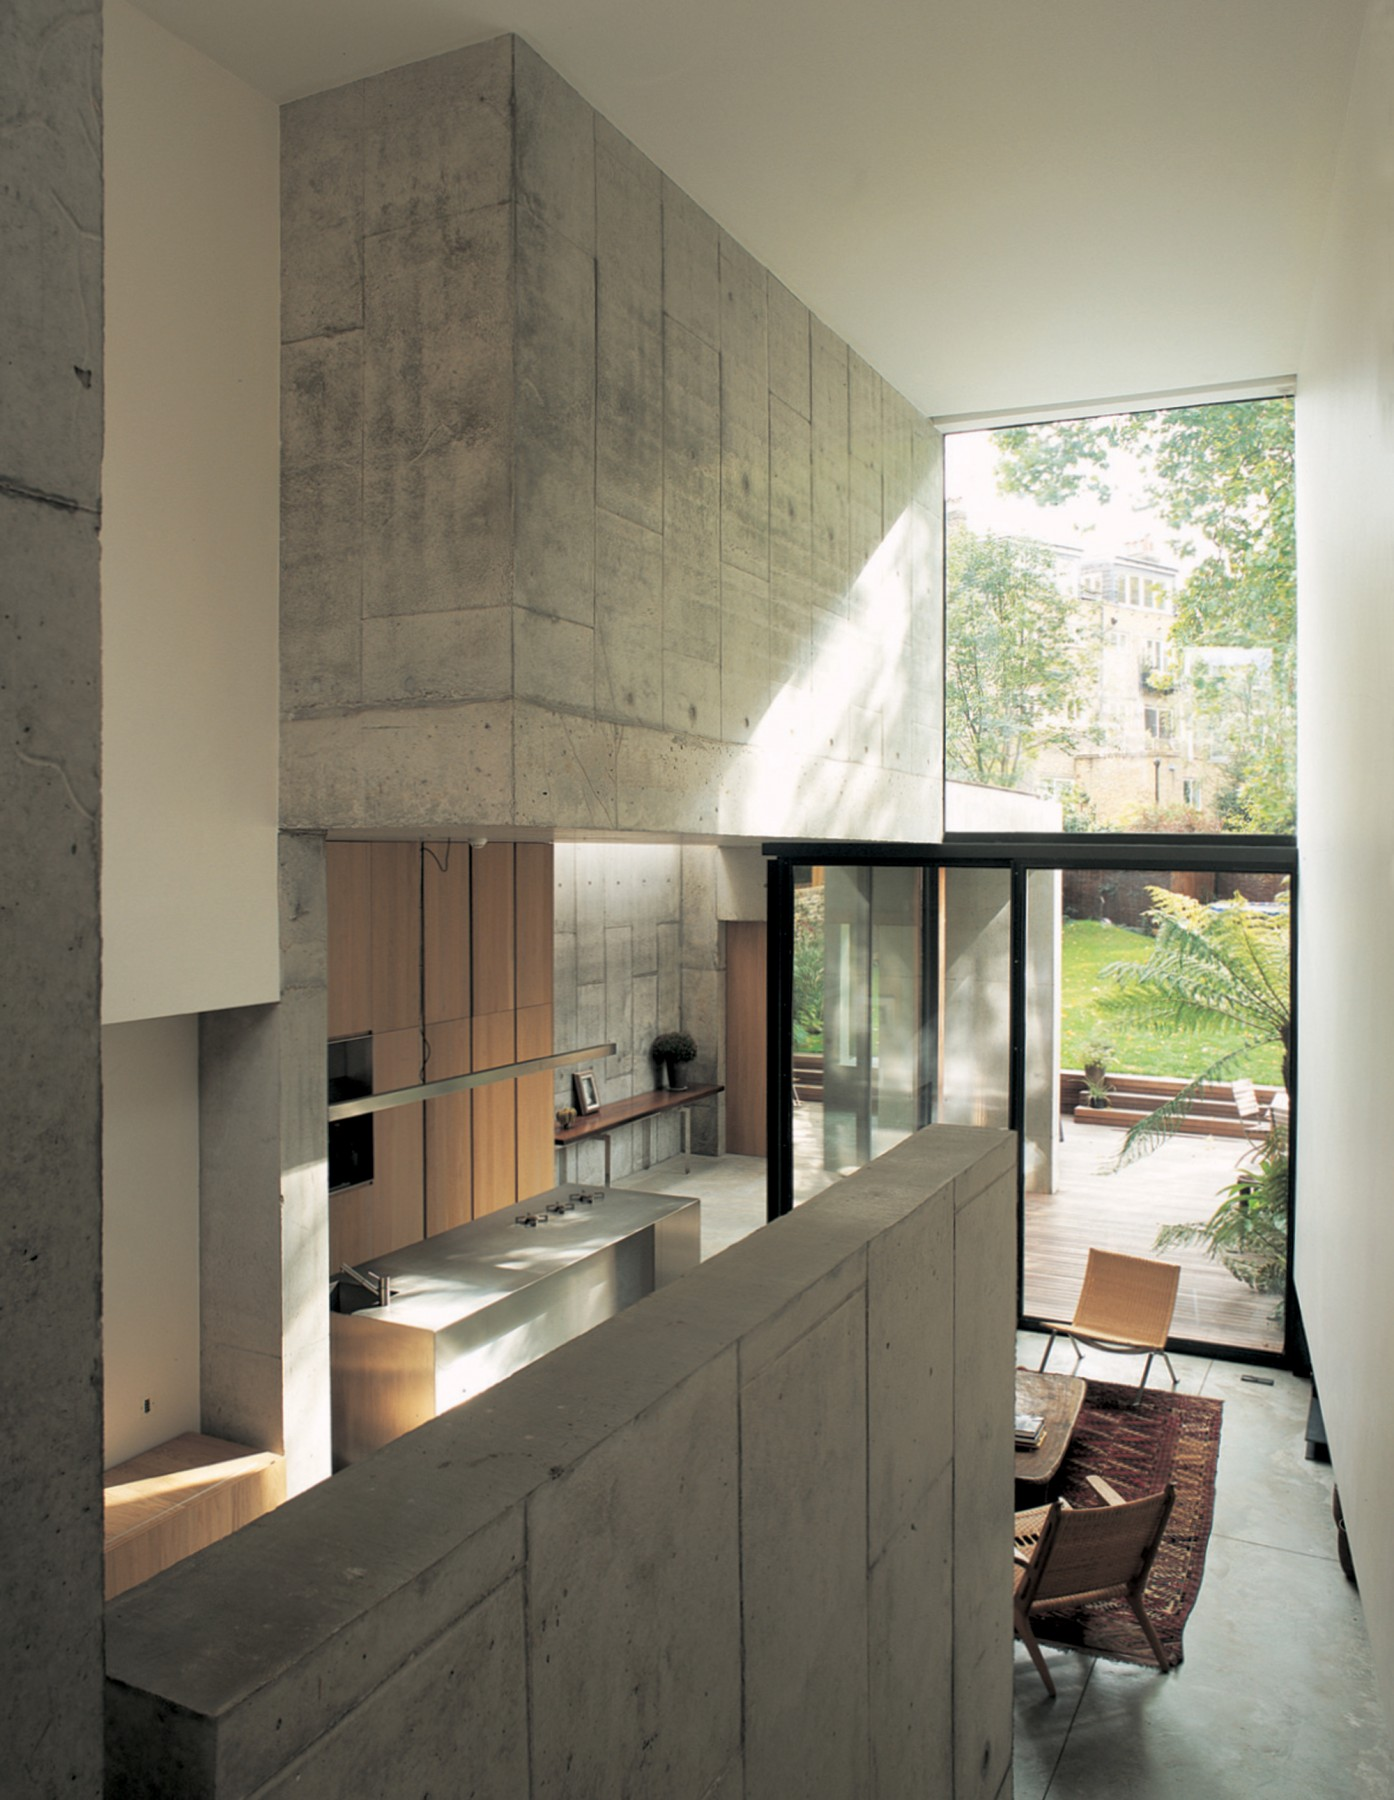 Kander-house-Primrose-hill-London-residential-home-contemporary-interior-Riba-award-victorian-Jamie-Fobert-Architects-4